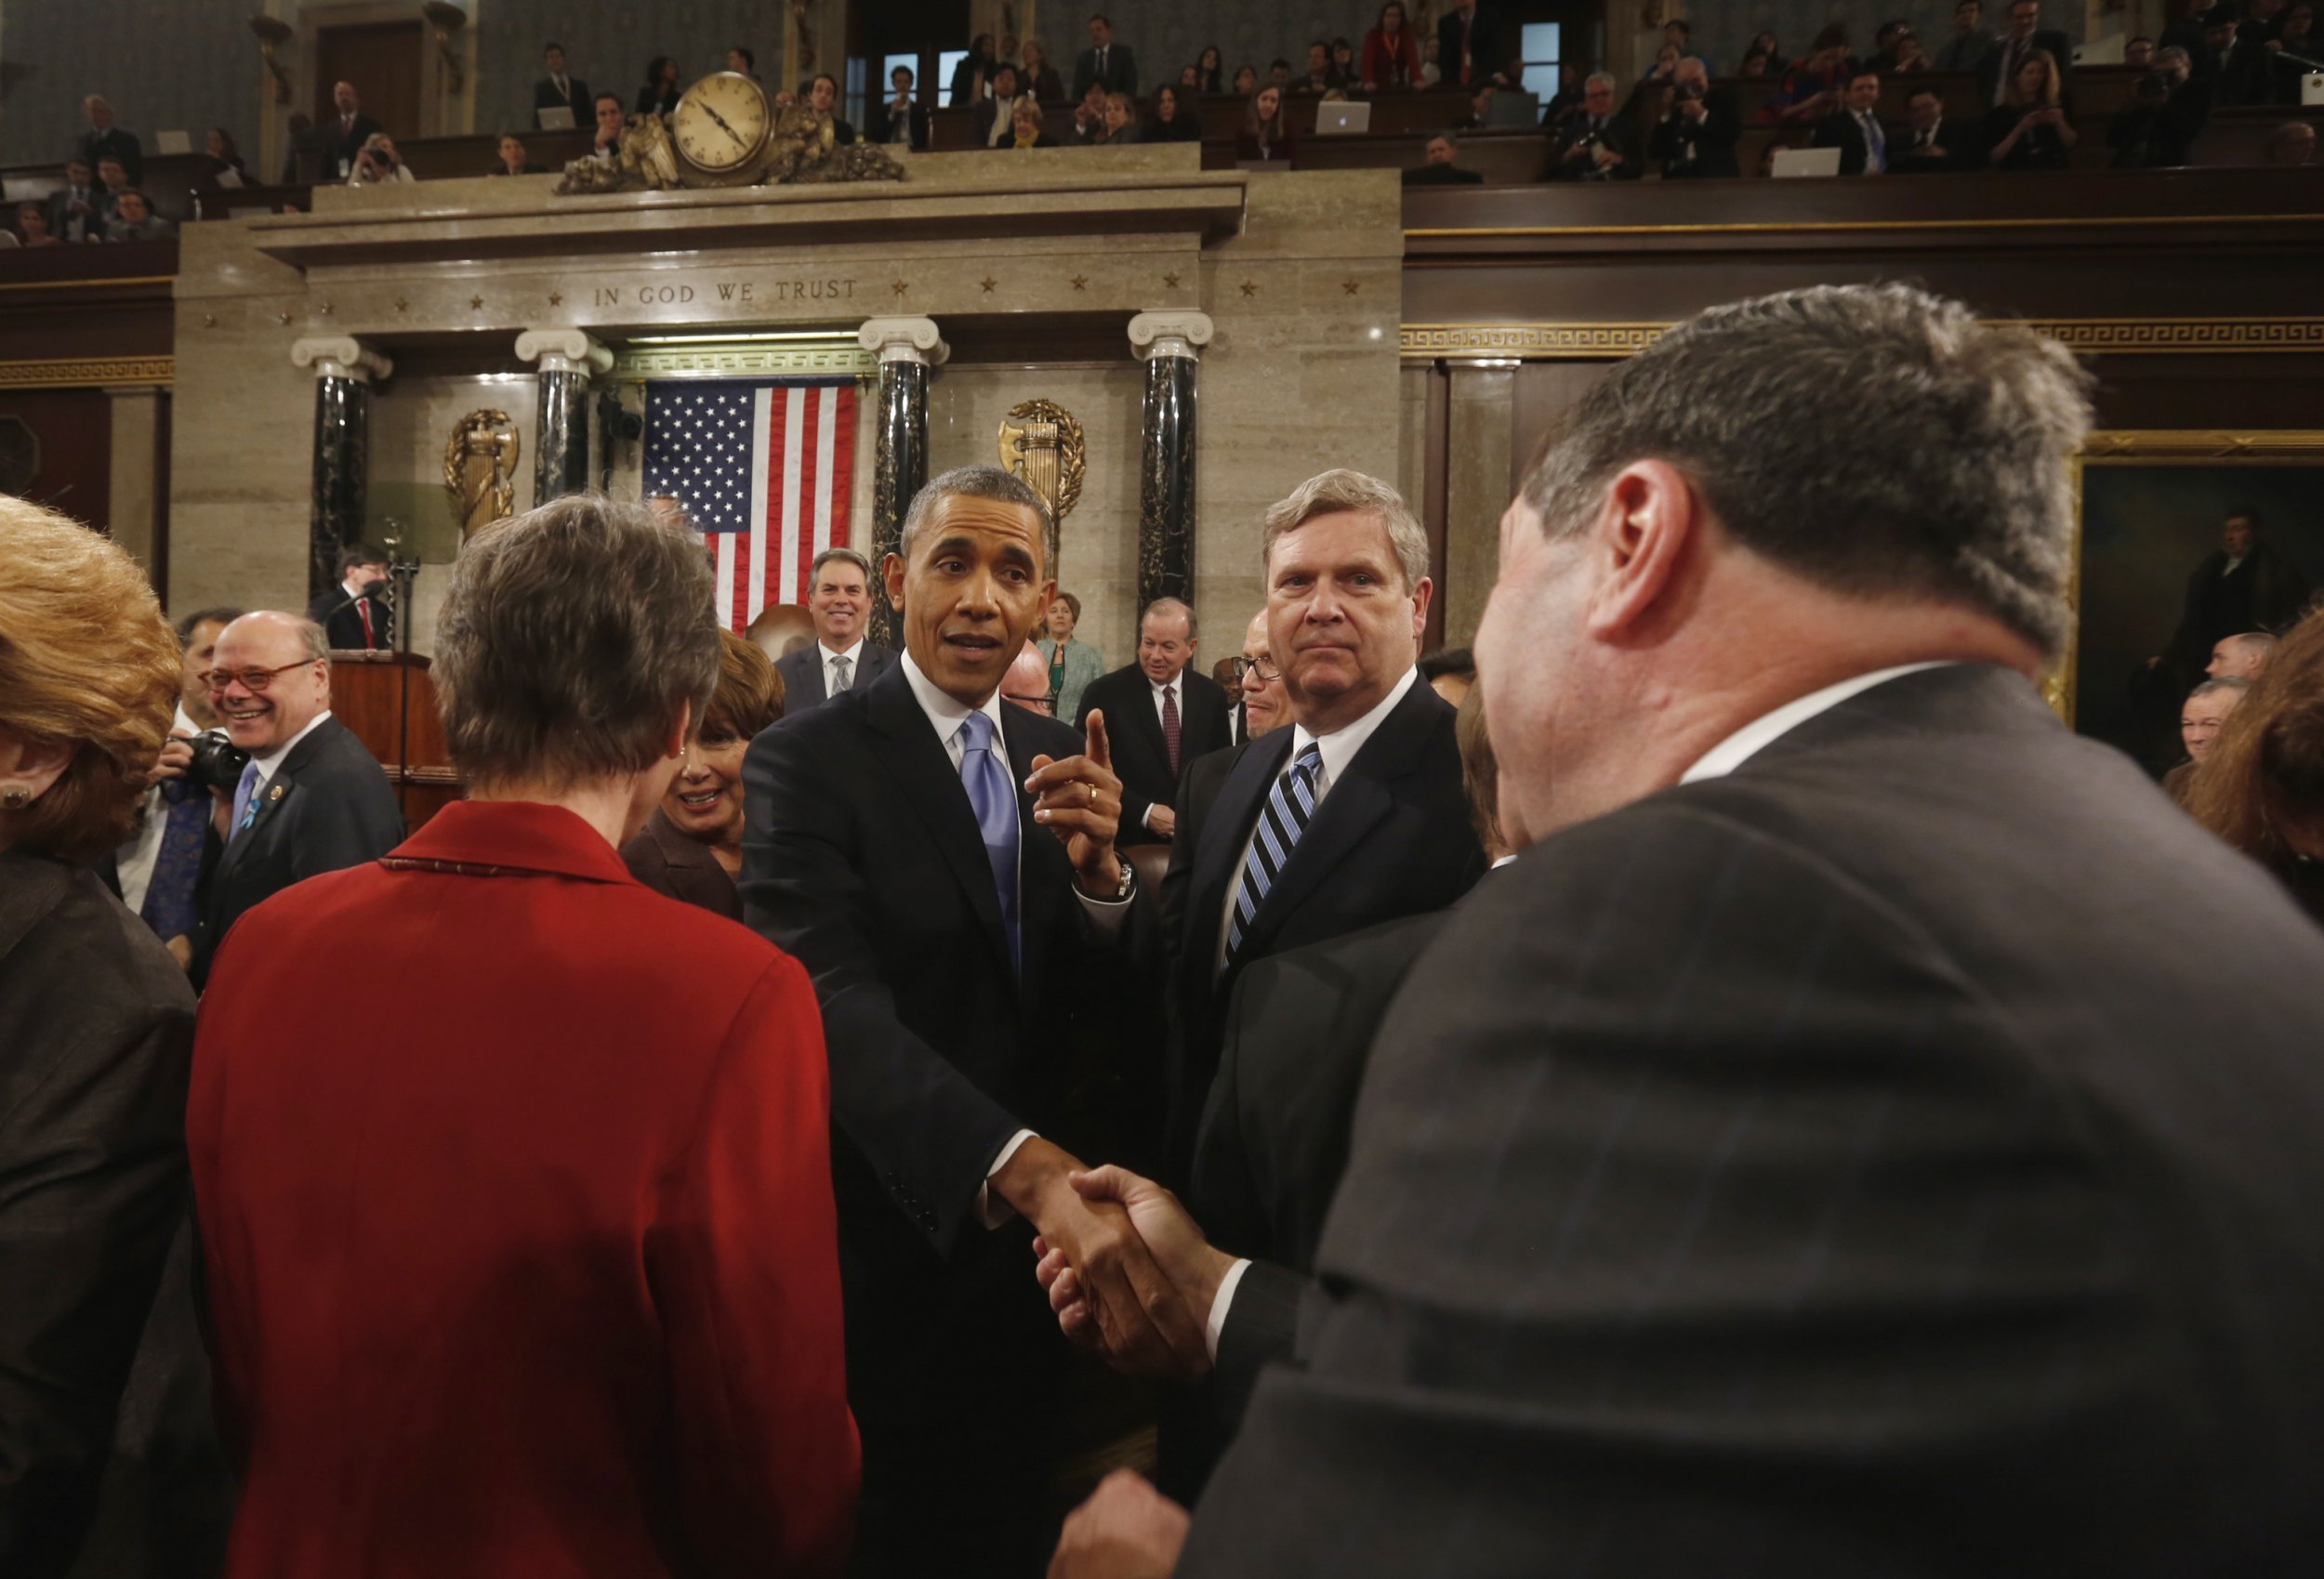 Obama state of the union 2